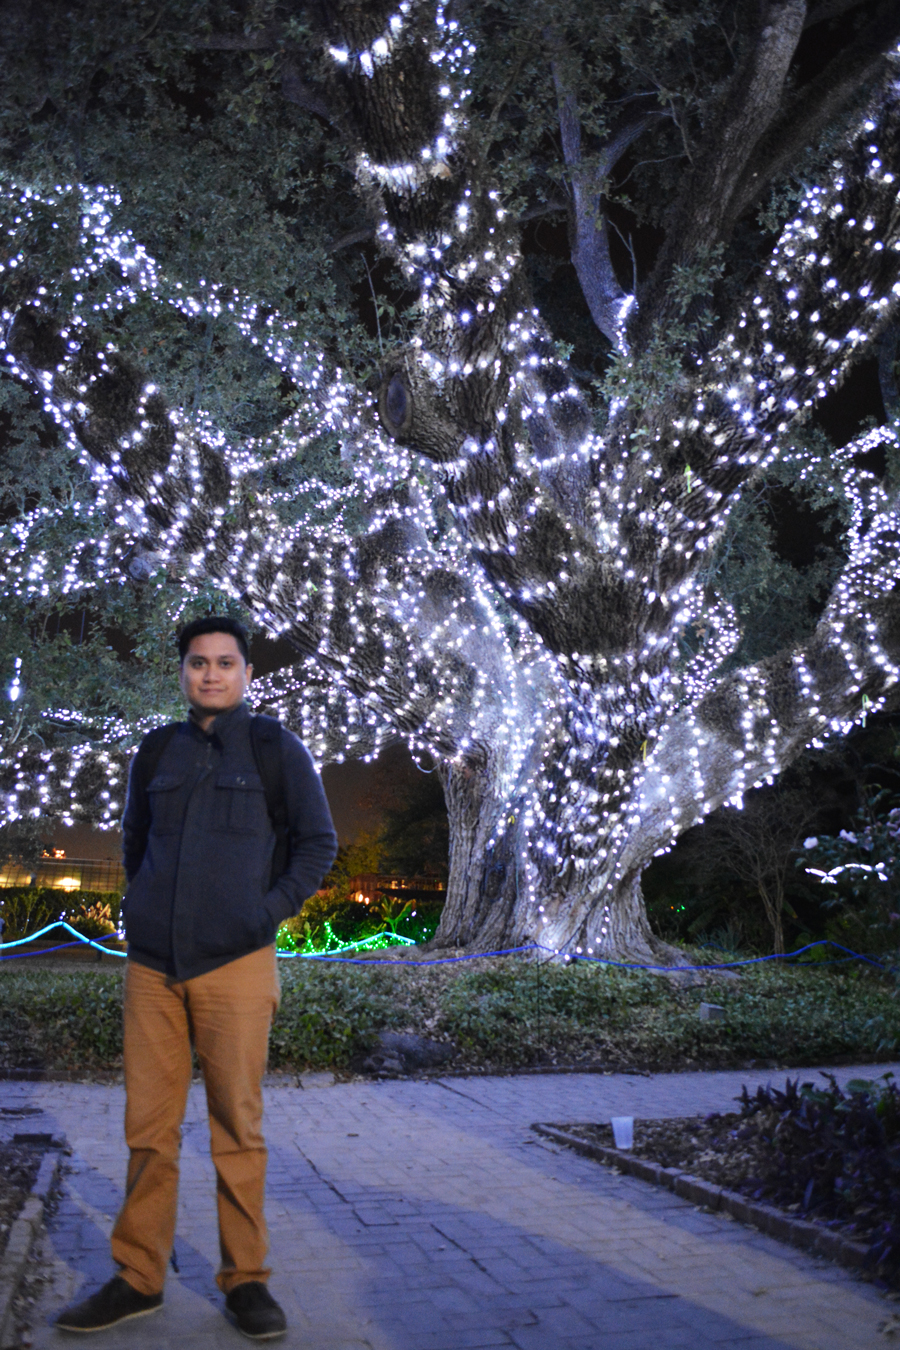 Kevin Banogon stands in front of the Enrique Alferez Oak adorned in lights in City Park.